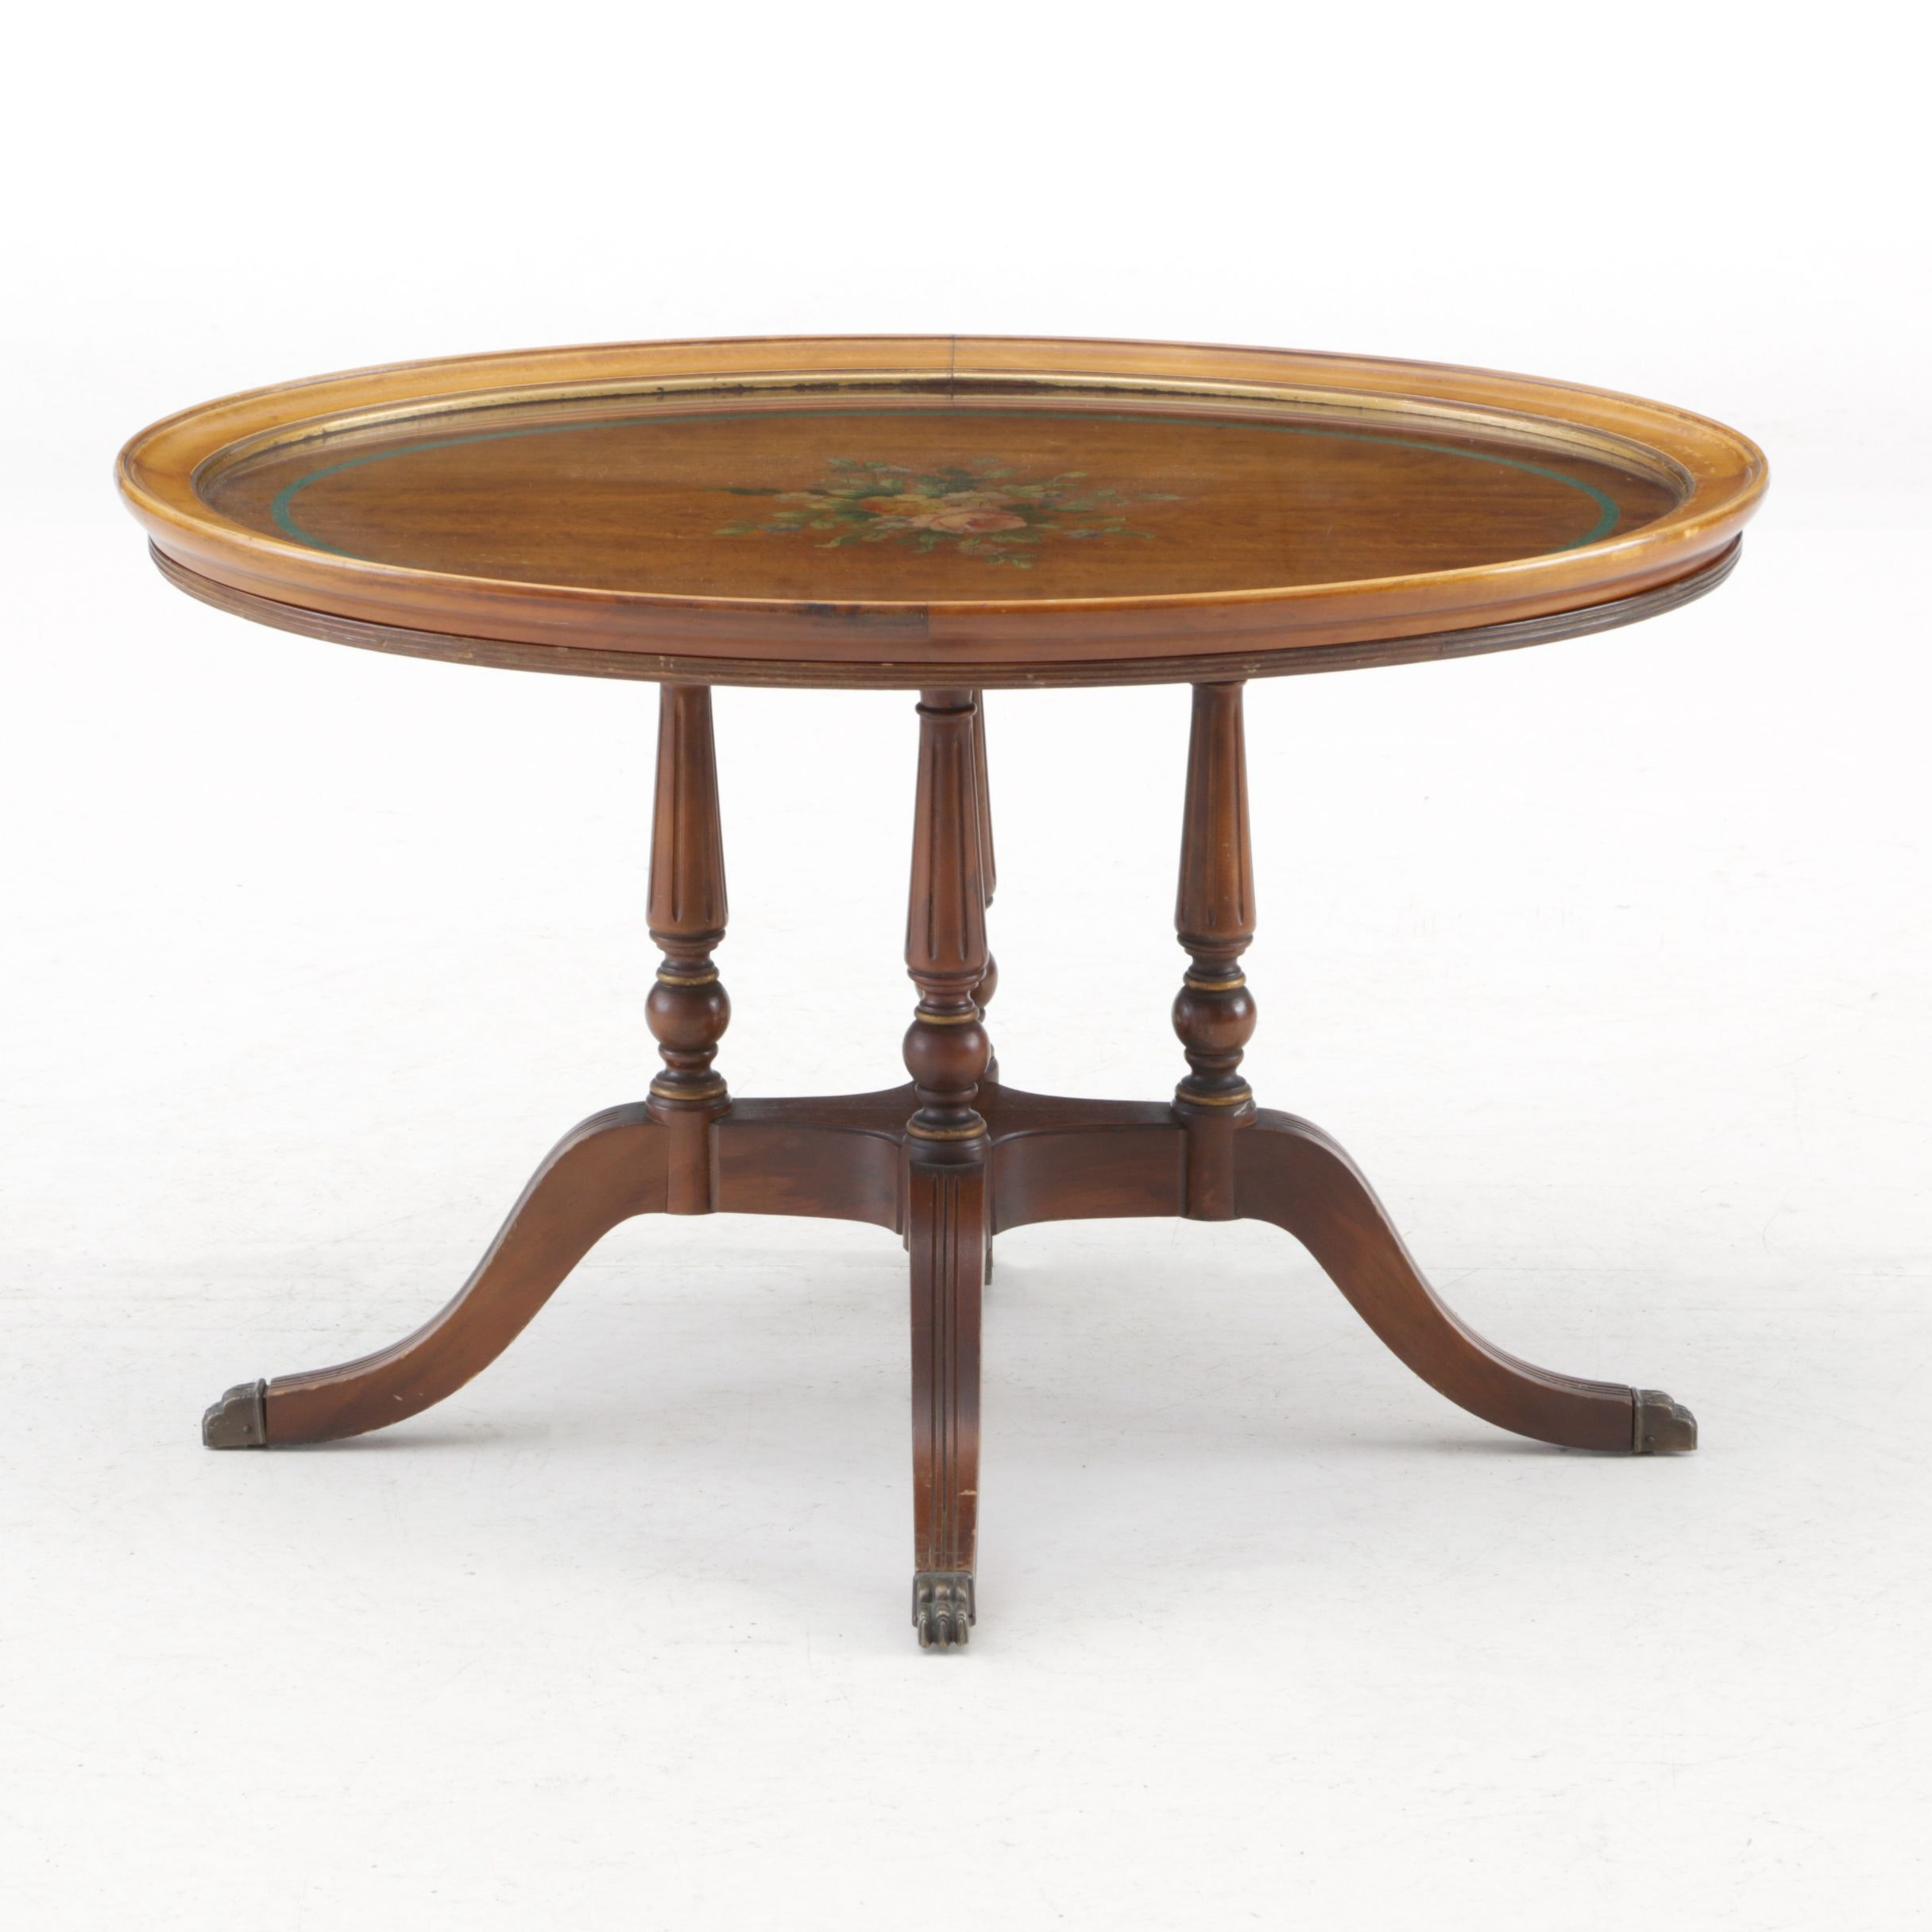 Regency Style Hand Painted Cherry Tray Table, Mid-19th Century